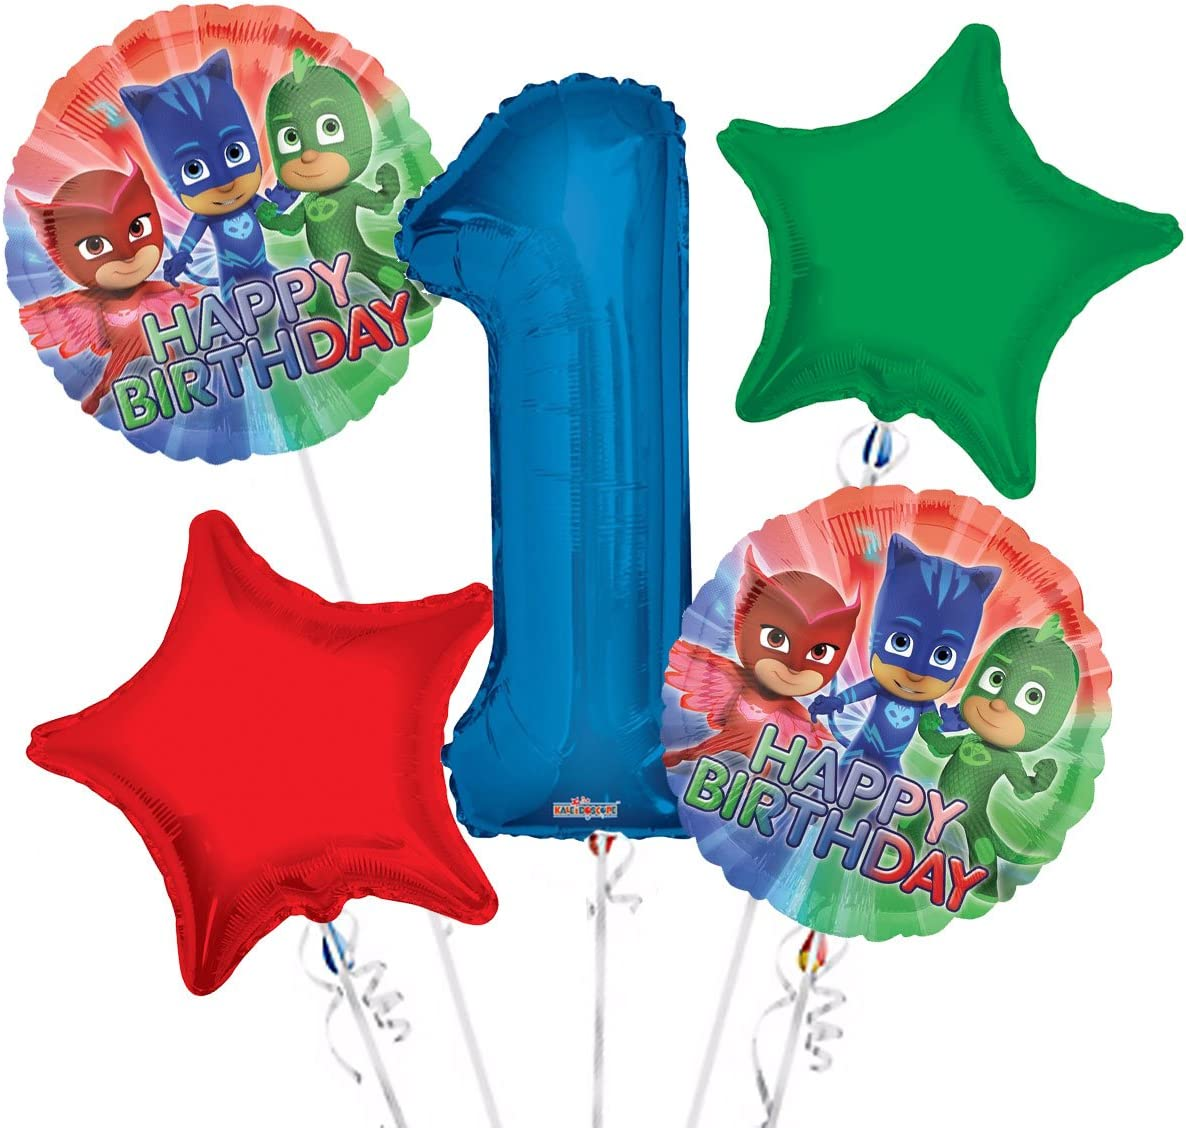 FIVE by Danilo PJ011 PJMasks birthday card for age 5